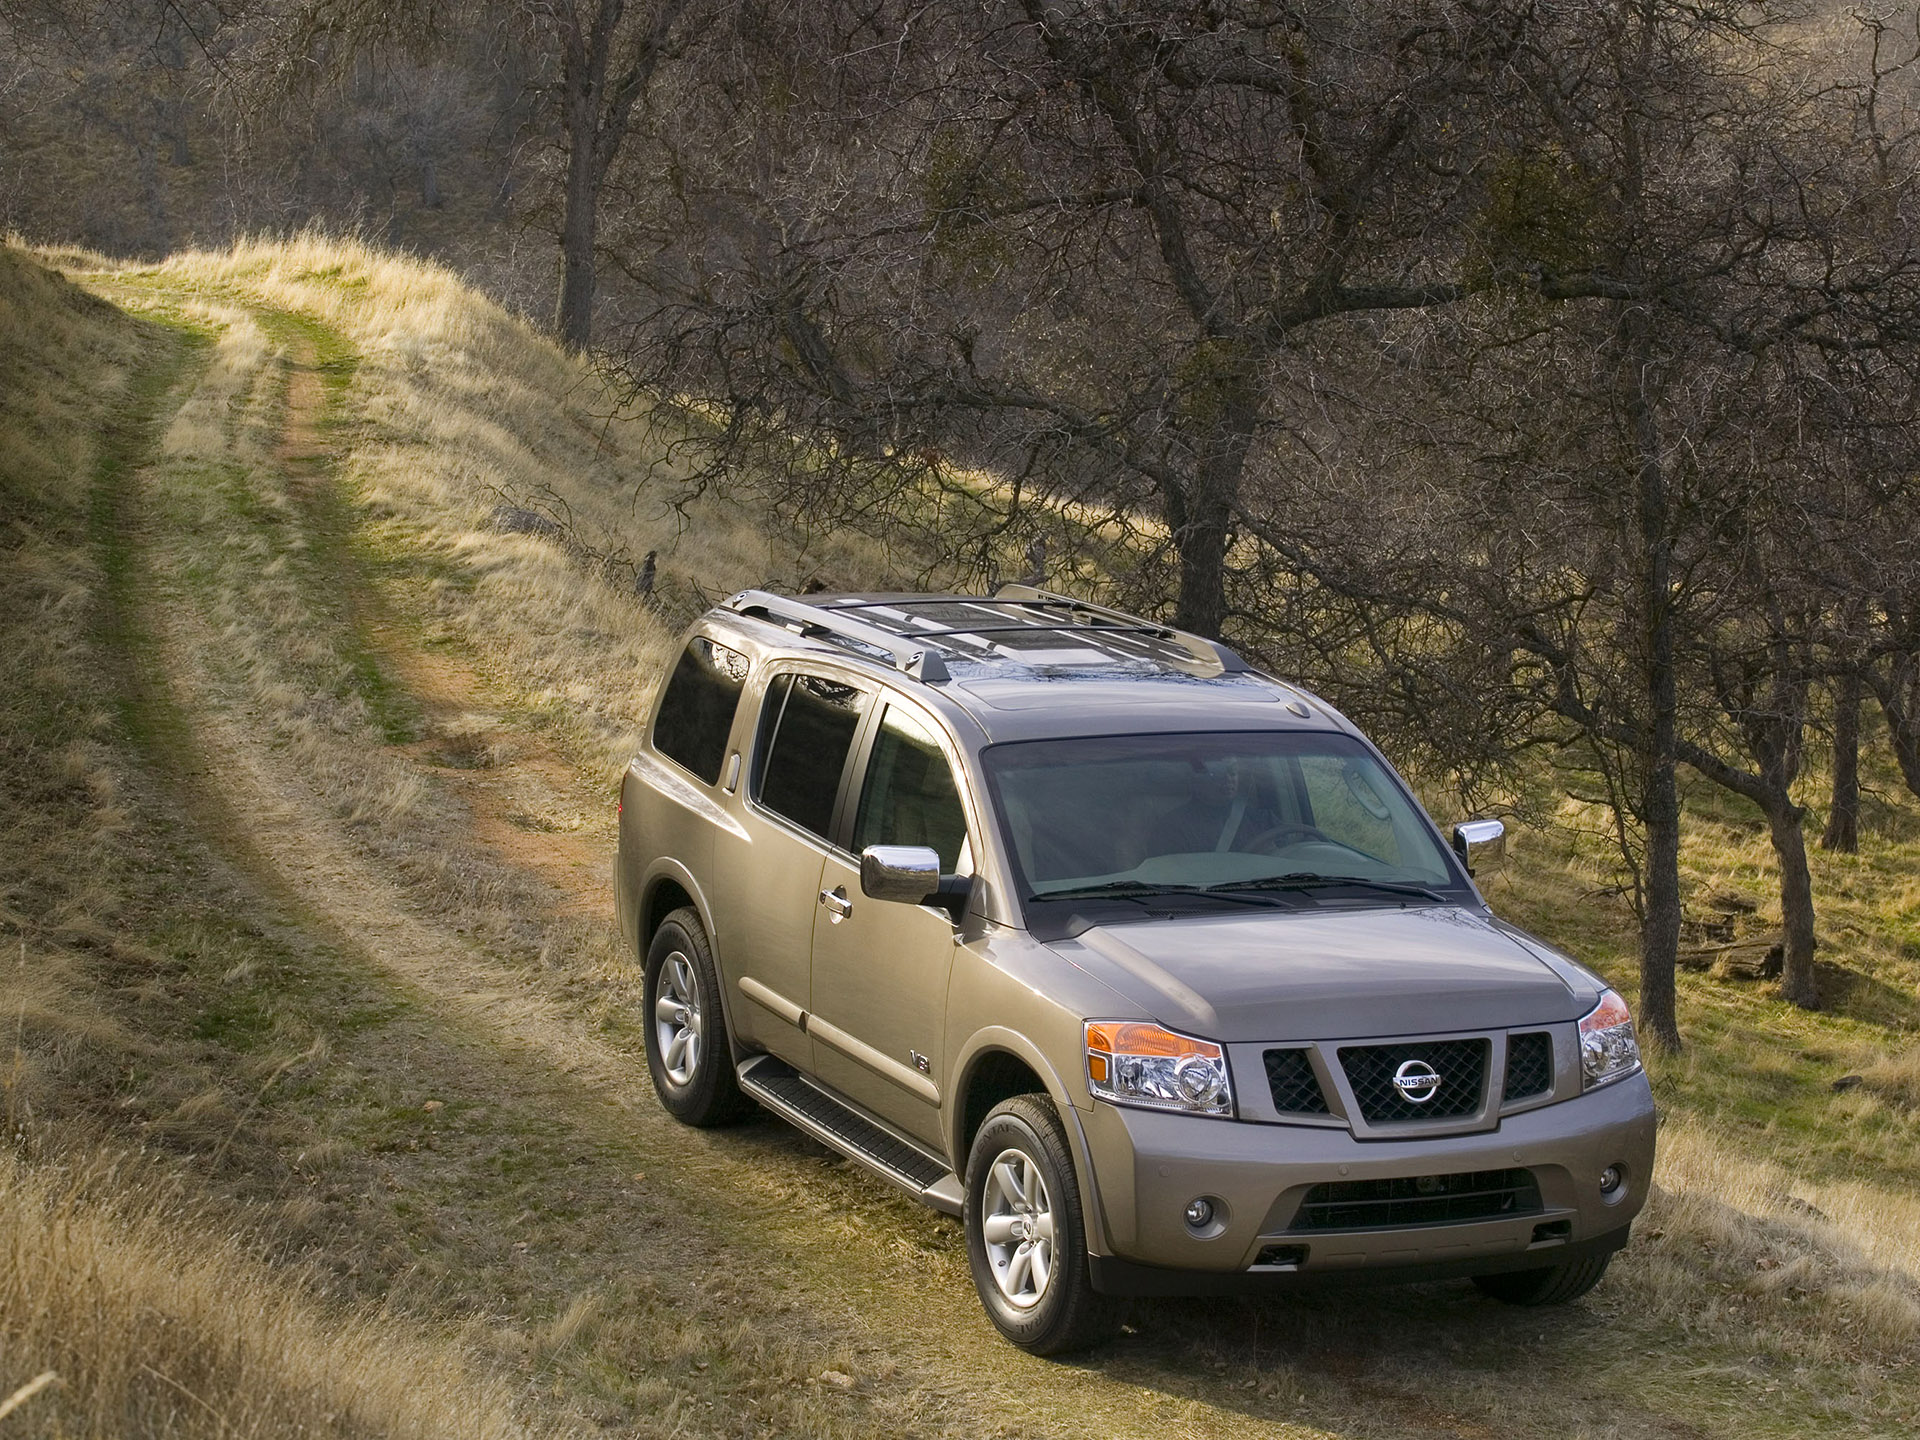 Nissan Armada Picture 55349 Nissan Photo Gallery Carsbasecom